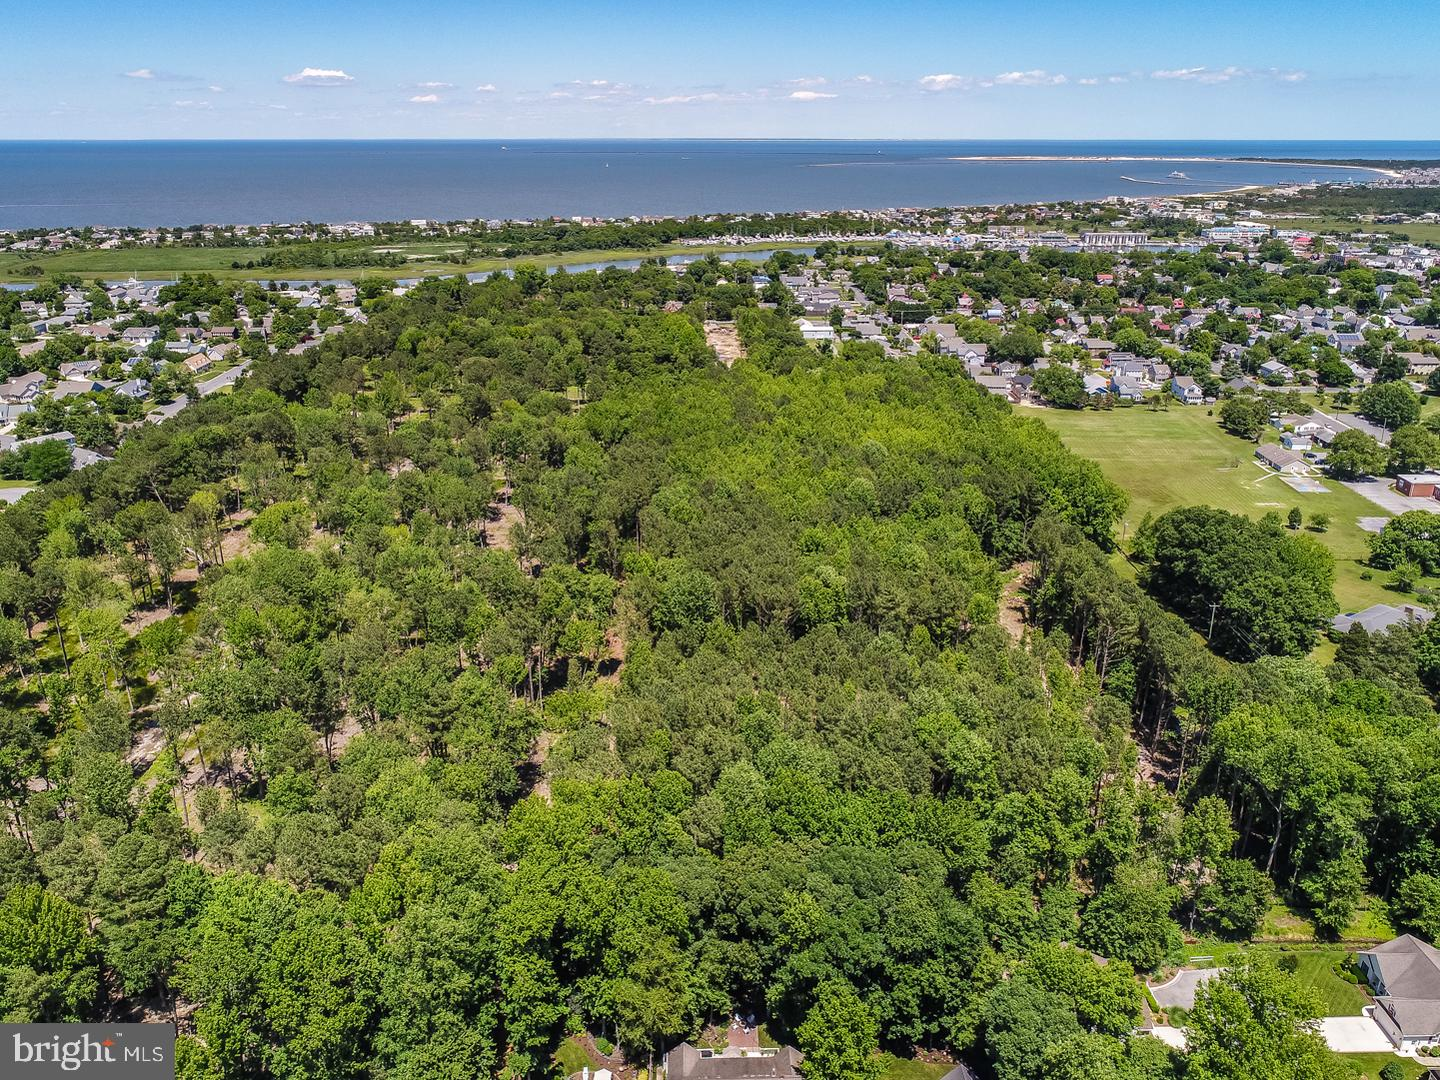 1002047794-300471101282-2021-07-19-11-35-30 Sold Listings - Rehoboth Beach Real Estate - Bryce Lingo and Shaun Tull REALTORS, Rehoboth Beach, Delaware